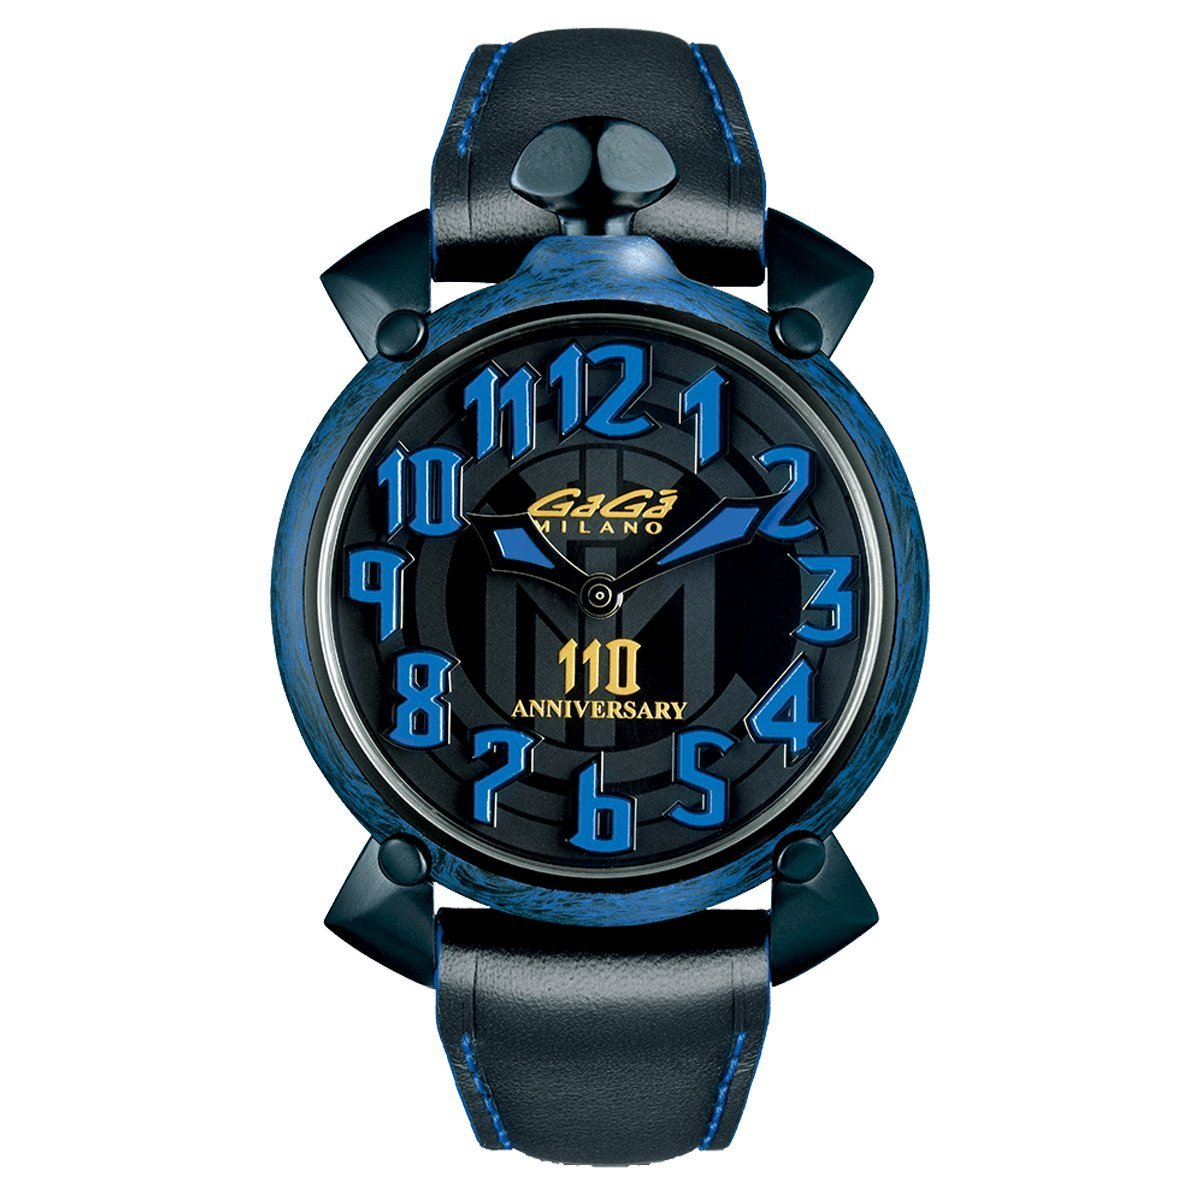 GaGà Milano Automatic 45MM Carbon Inter Milan Limited Edition - Watches & Crystals